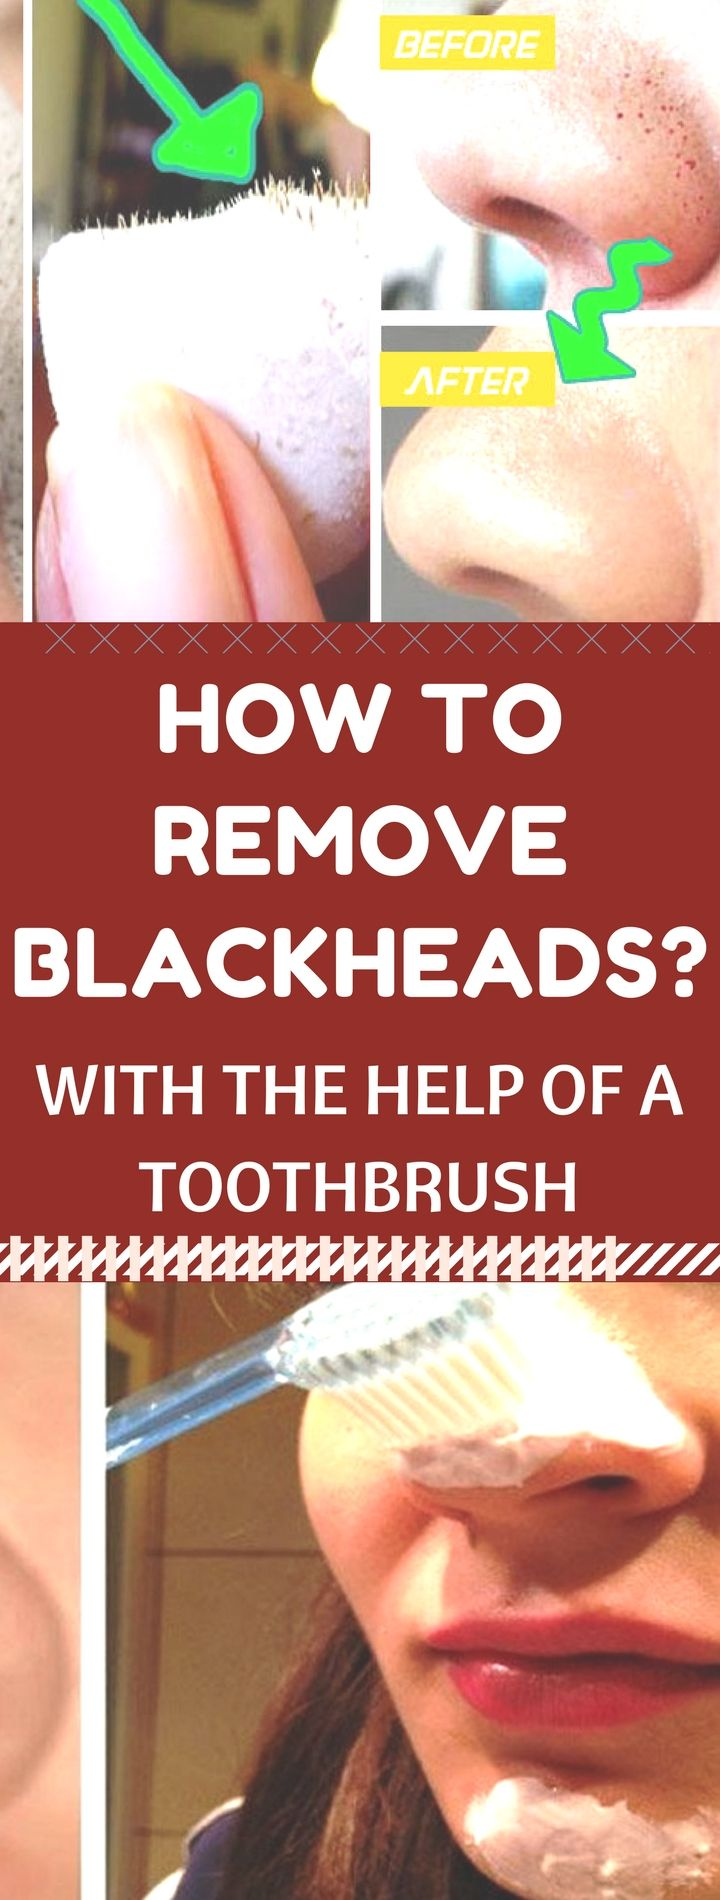 How to Remove Blackheads with the Help of a Toothb…